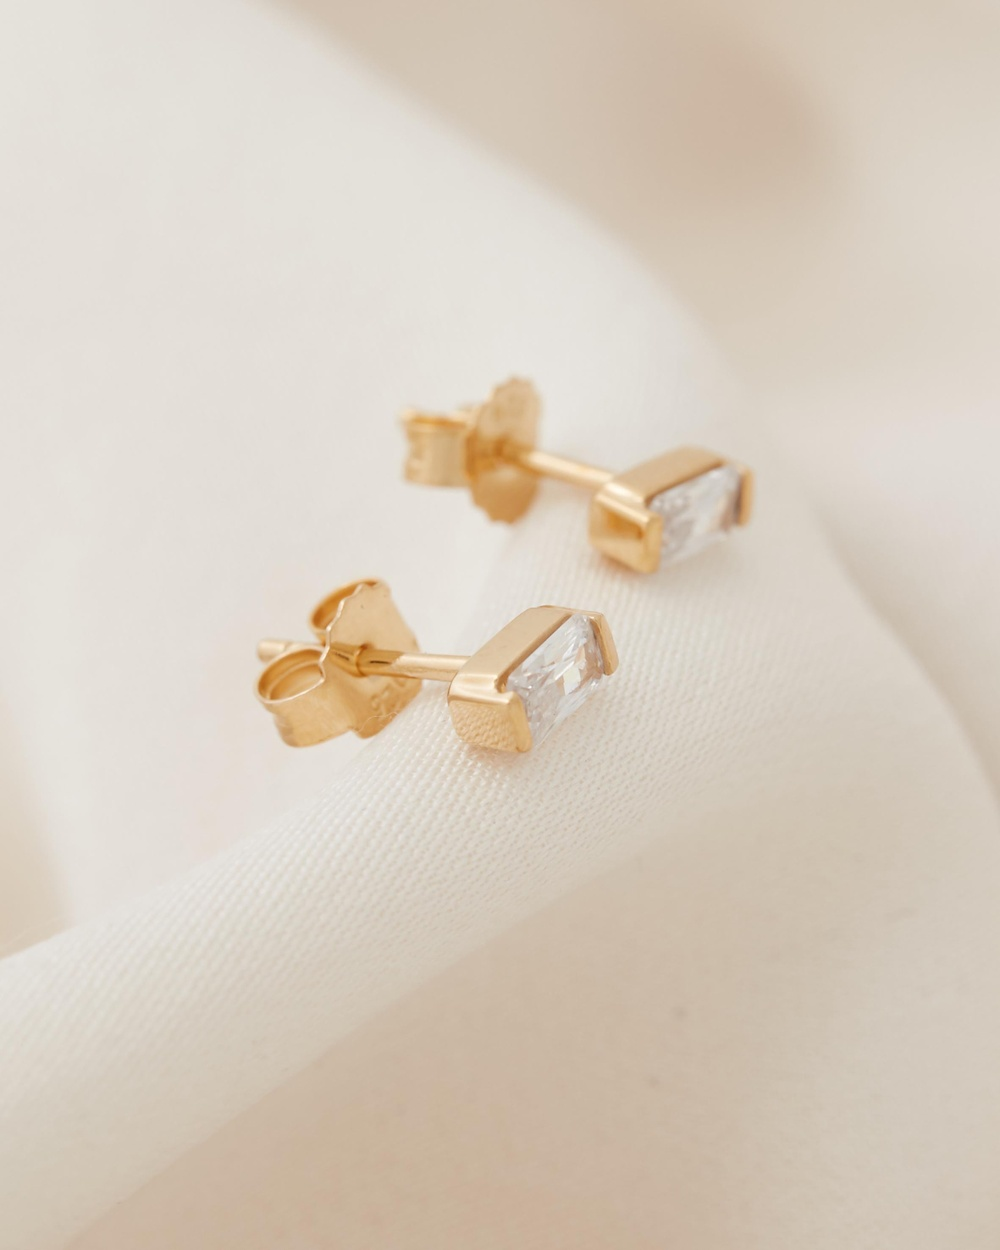 Medley Stunner Studs Jewellery 18ct Fine Yellow Gold Plated